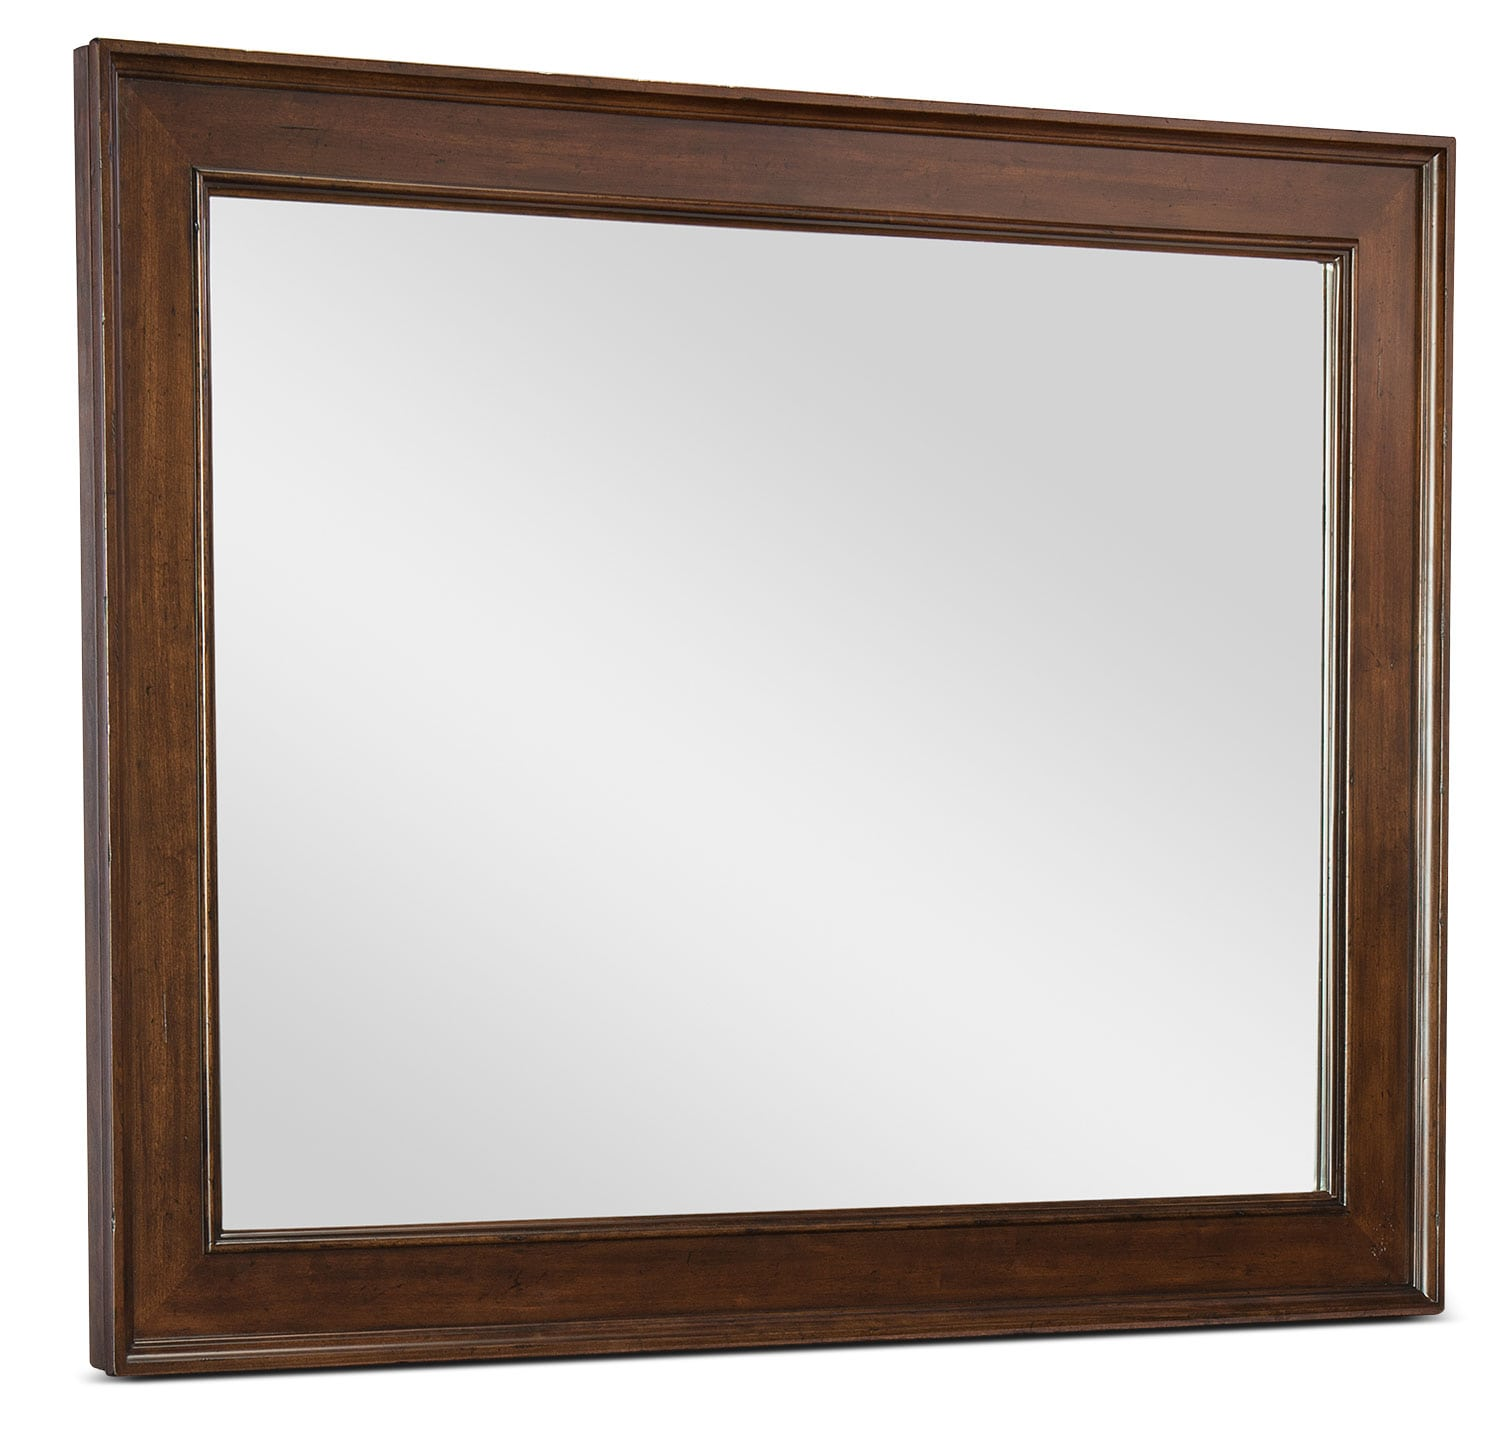 Rachael Ray Upstate Mirror - Conciare Cherry